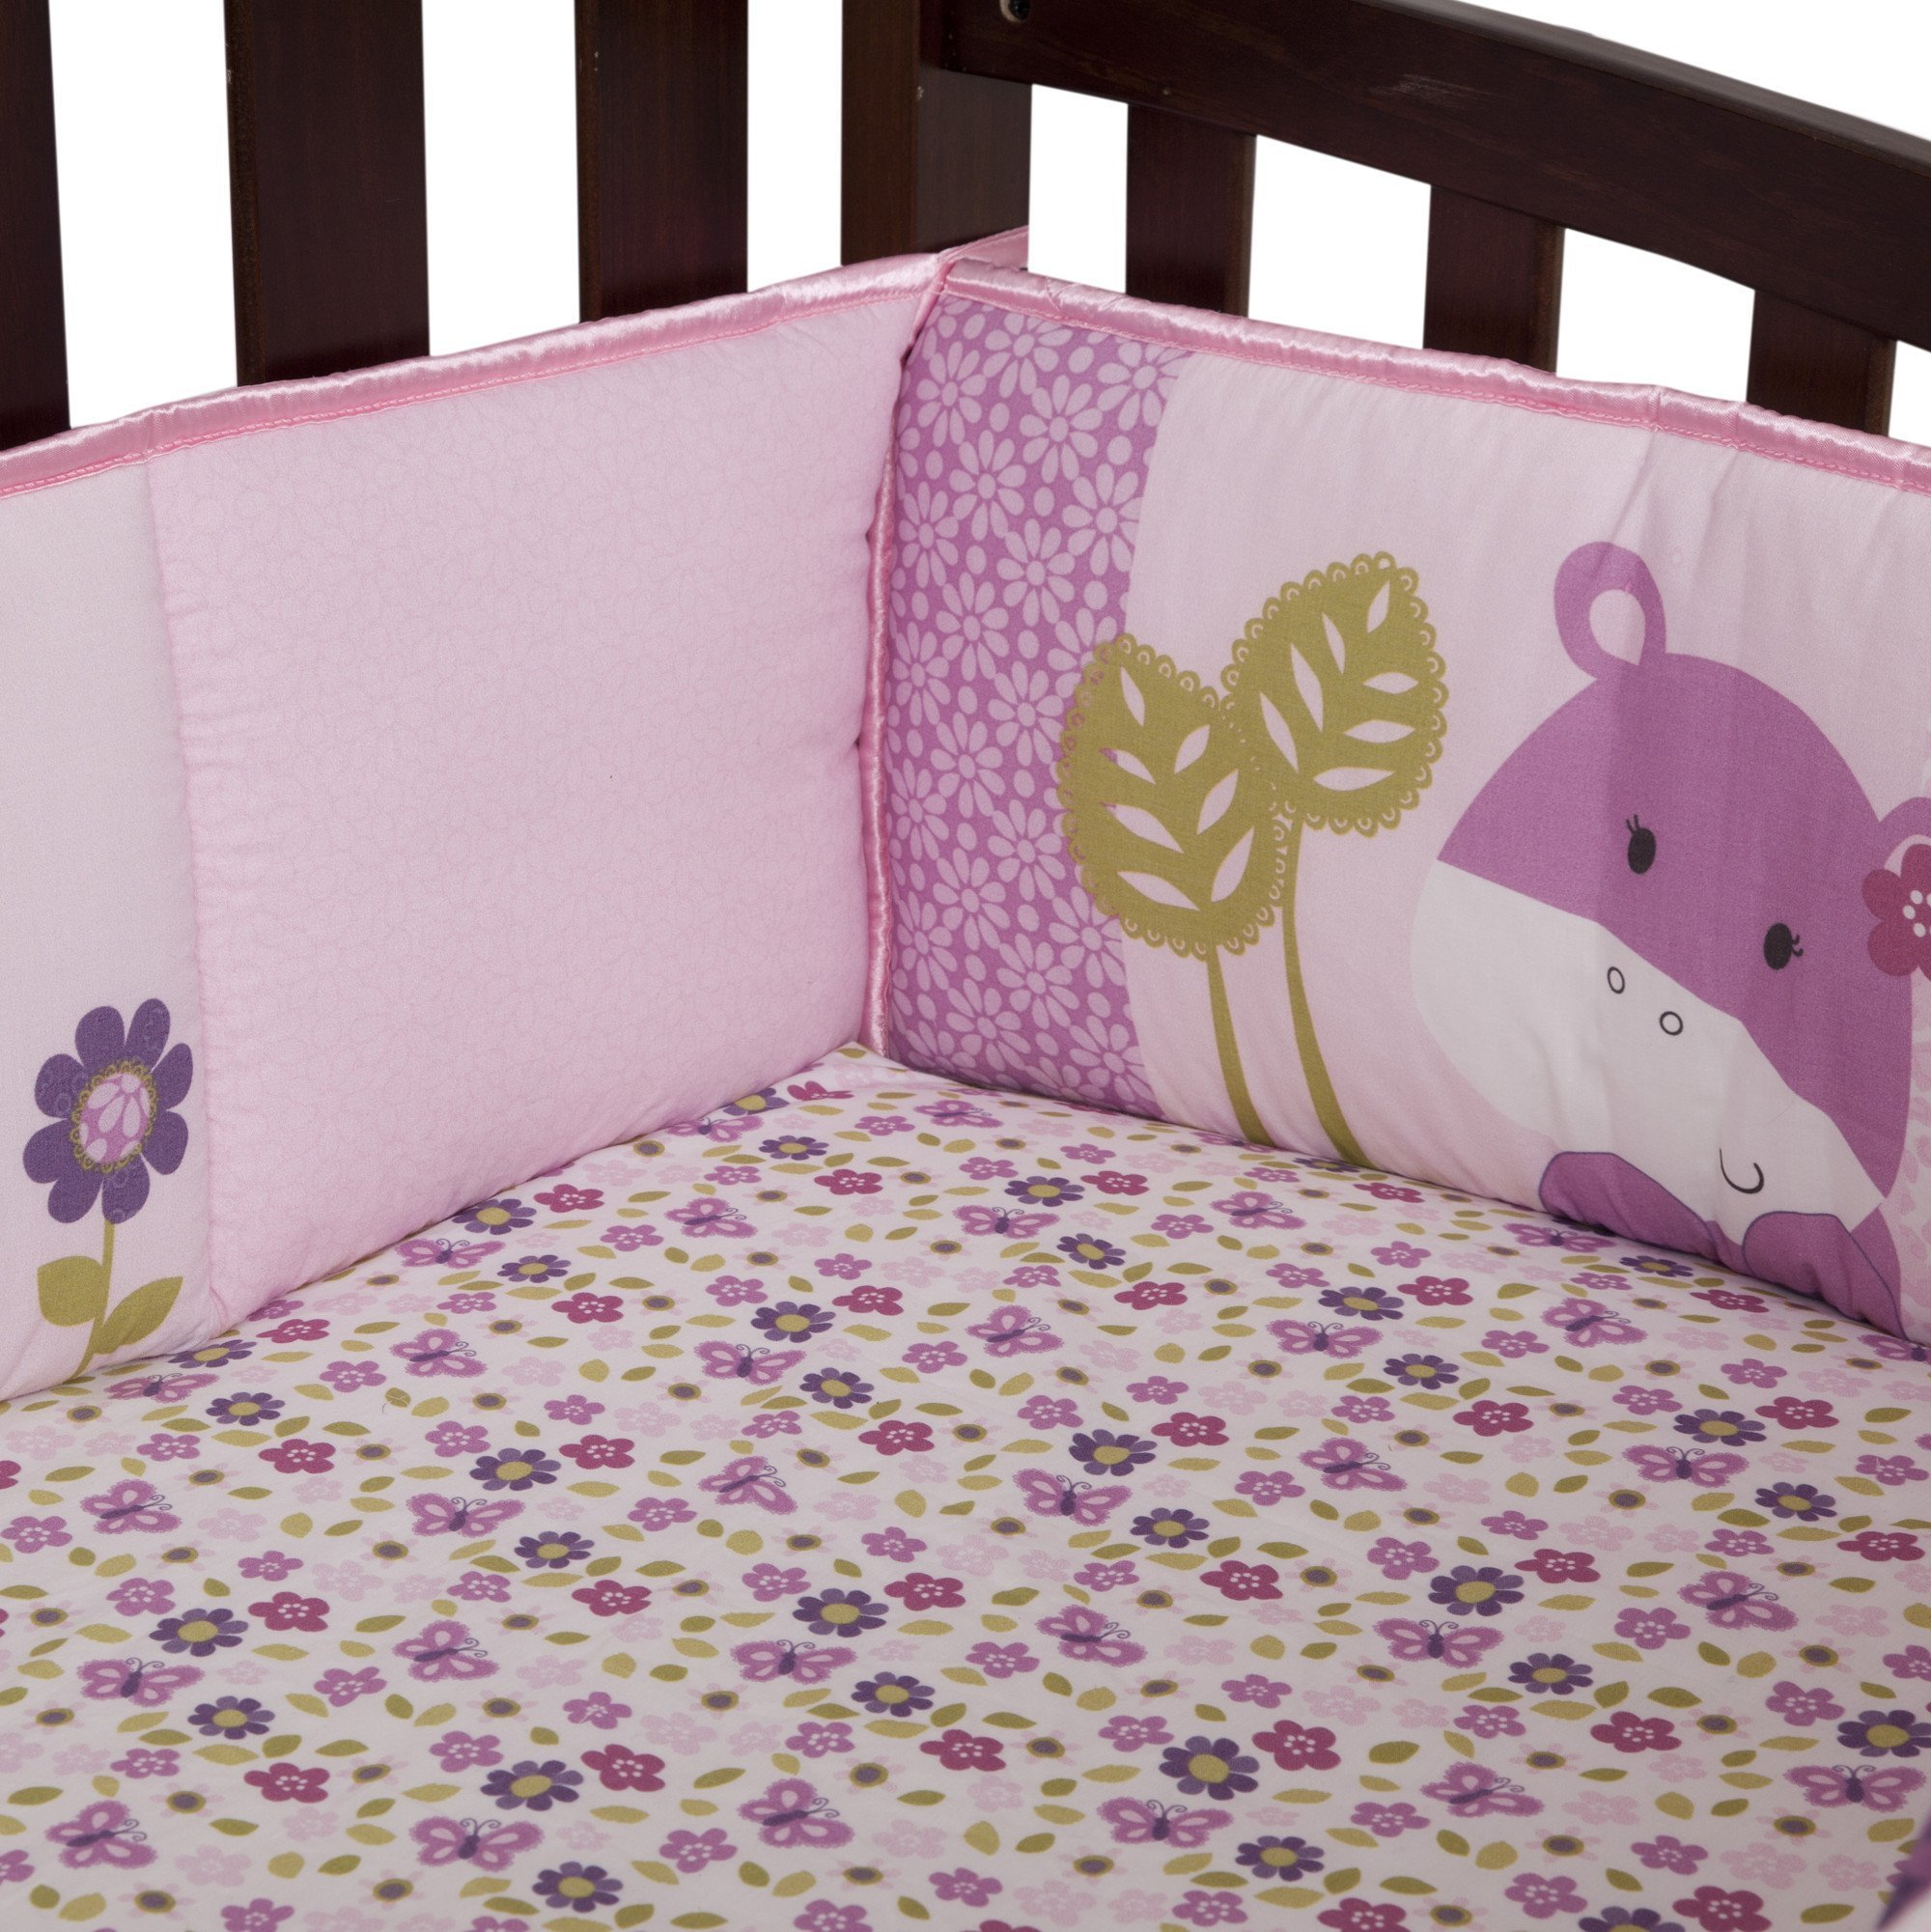 Lambs & Ivy Hopscotch Jungle 4 Piece Crib Bumper, Pink/Plum/Fuscia